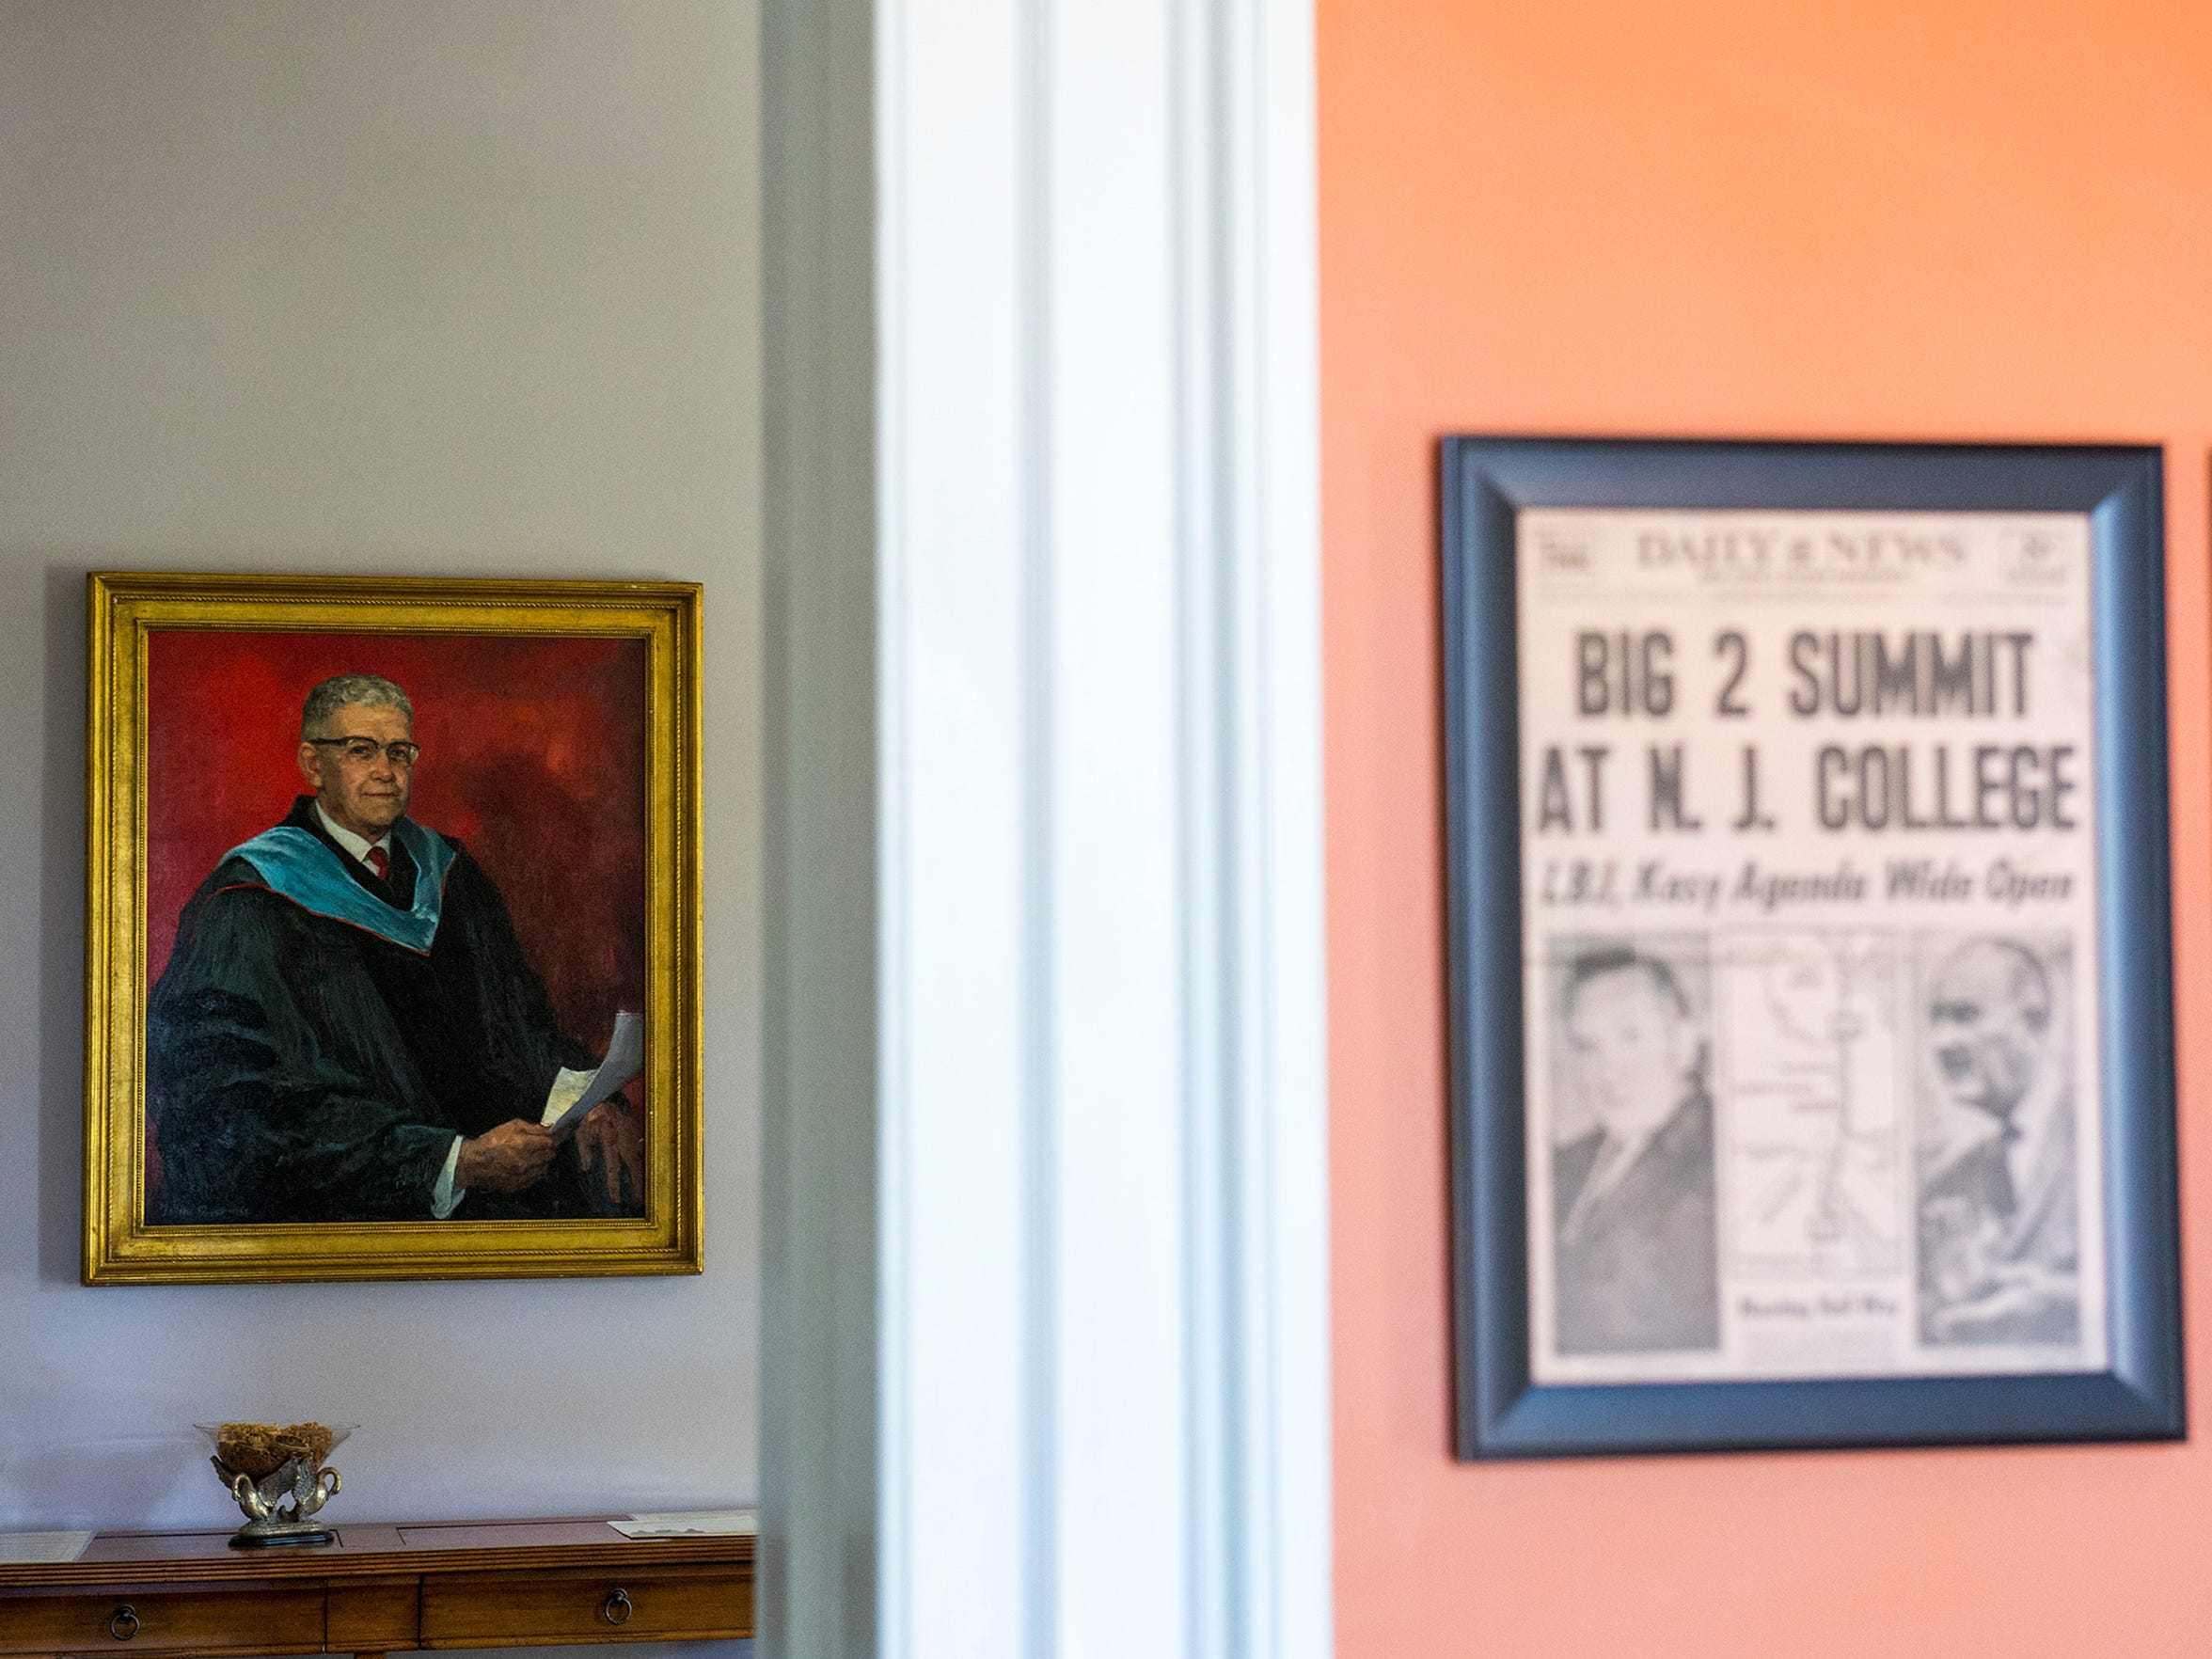 A painting of Dr. Thomas E. Robinson hangs inside the Hollybush Mansion Friday, June 9, 2017 at Rowan University in Glassboro. Robinson was president during the Johnson-Kosygin summit in 1967.